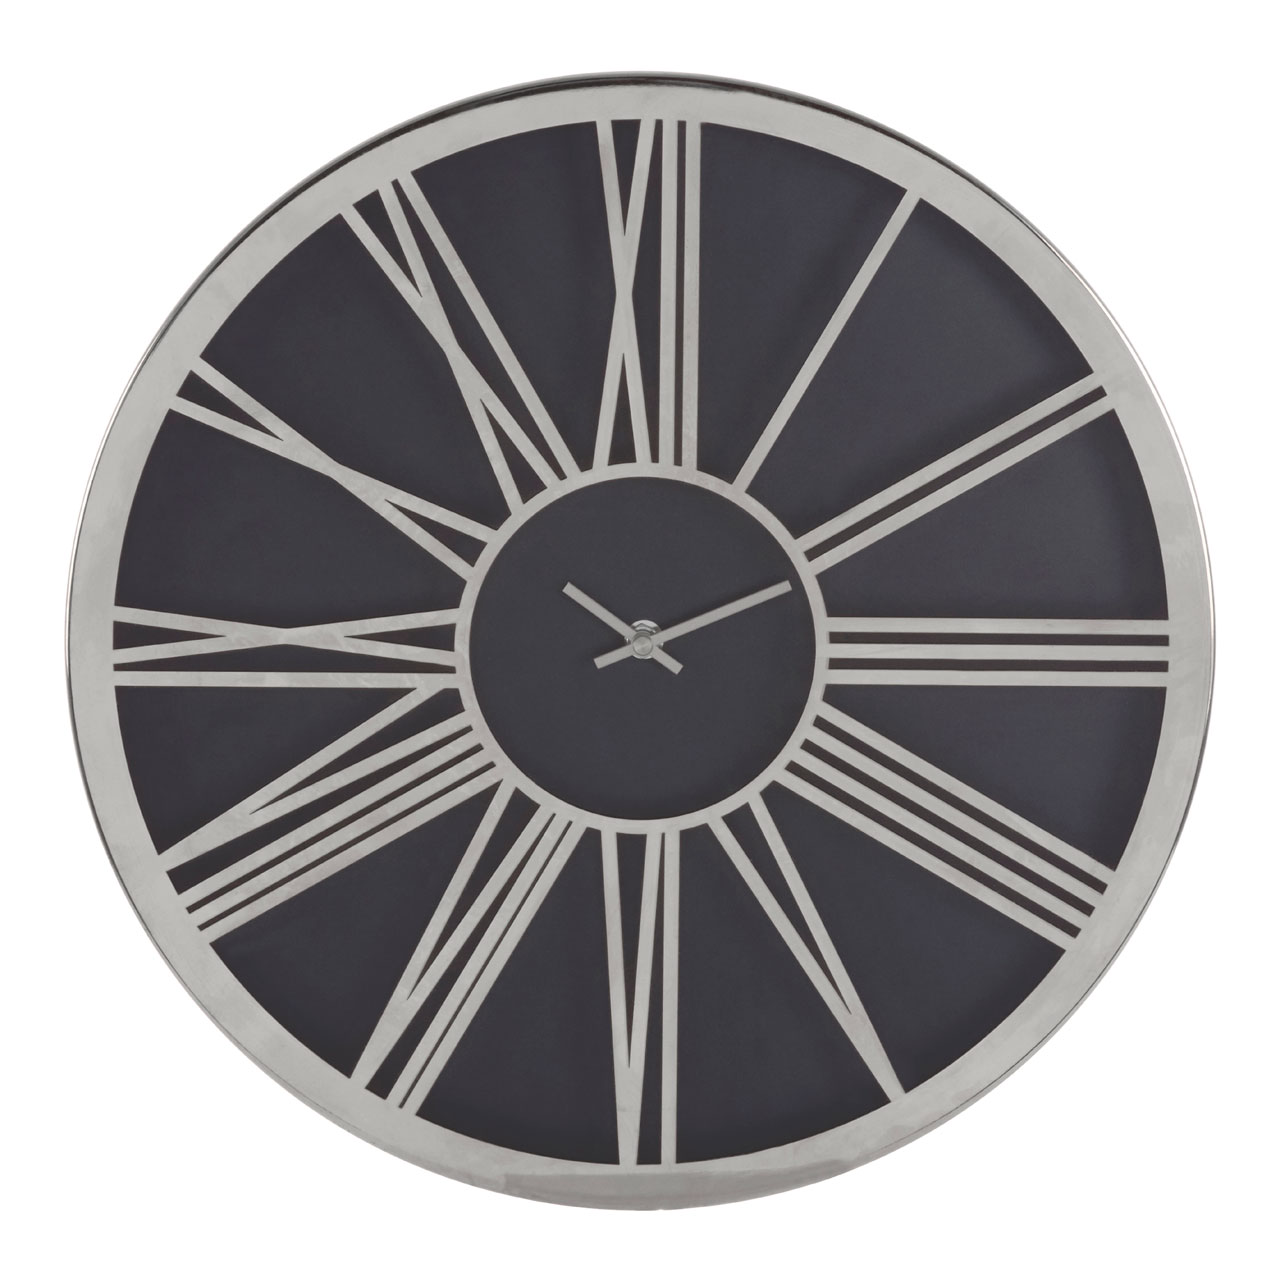 Details About Baillie Round Wall Clock Black Face Chrome Og Roman Numerals